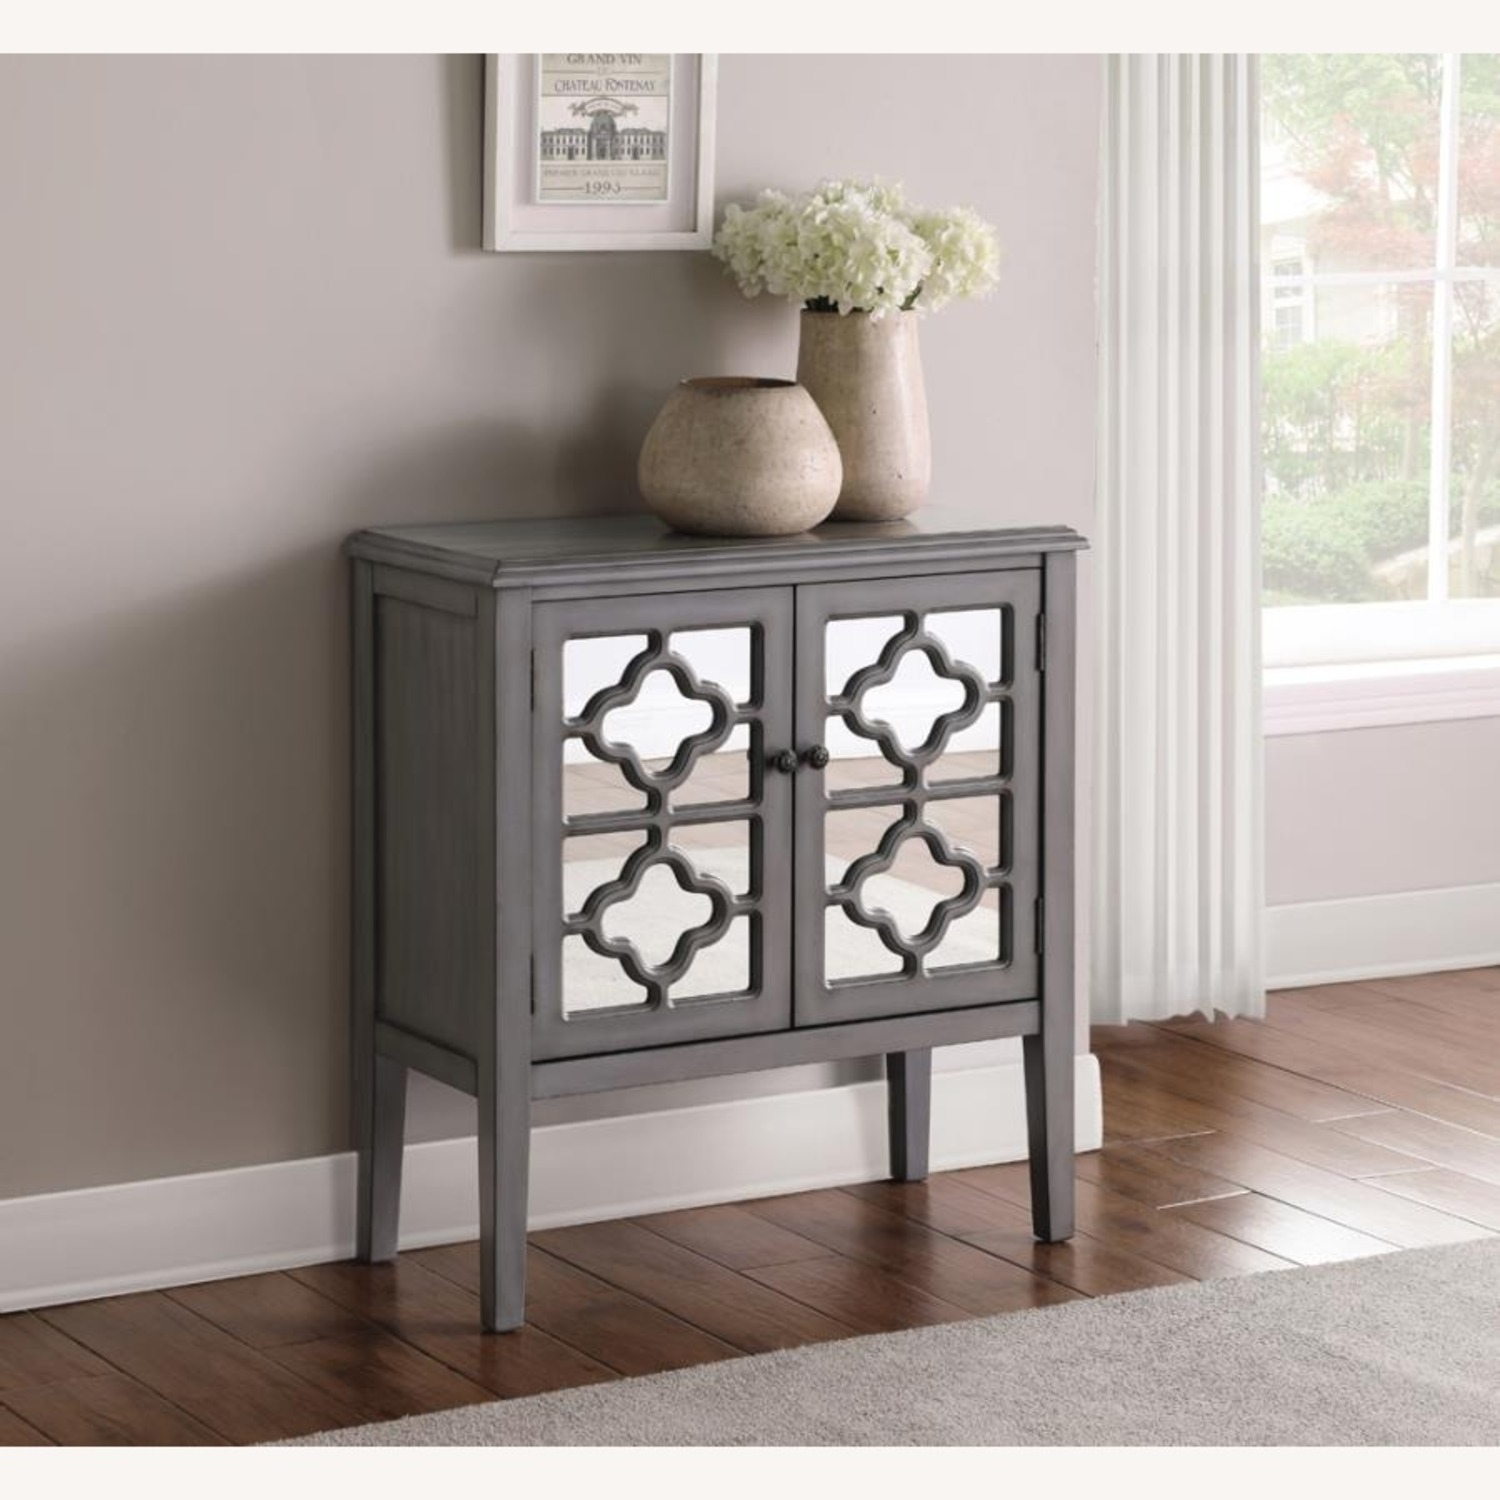 Accent Cabinet In Grey Hardwood Finish - image-1